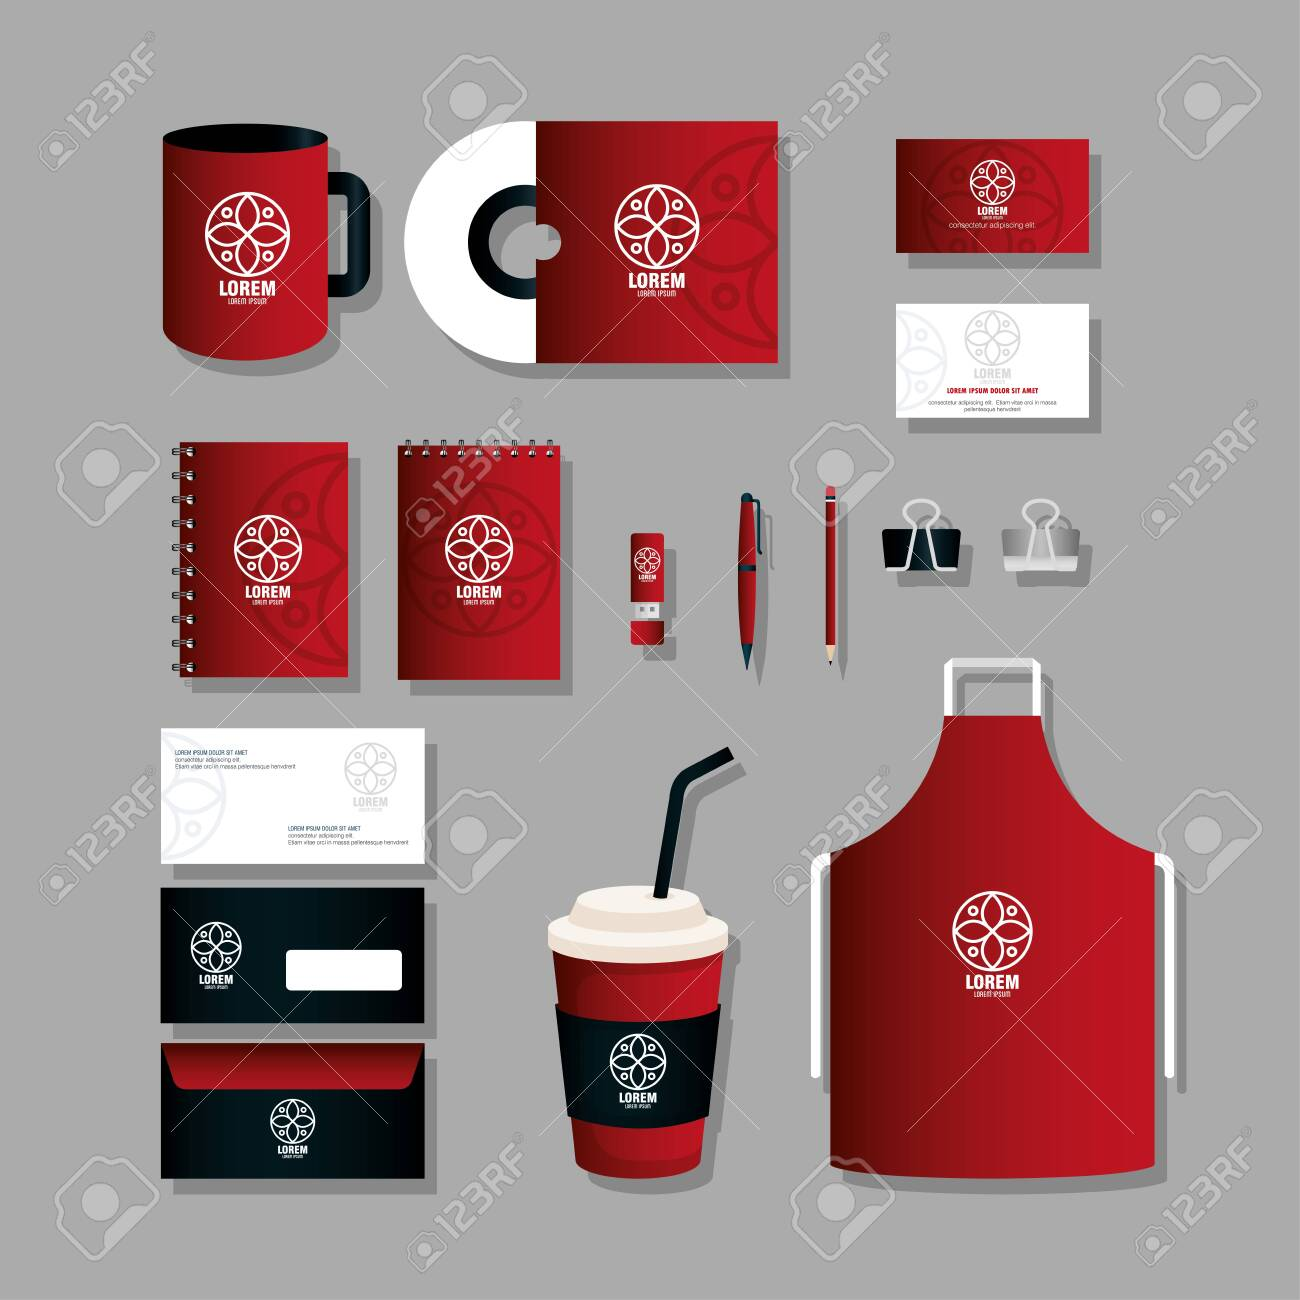 corporate identity brand mockup, set business stationery, black and red mockup with white sign vector illustration design - 152768193